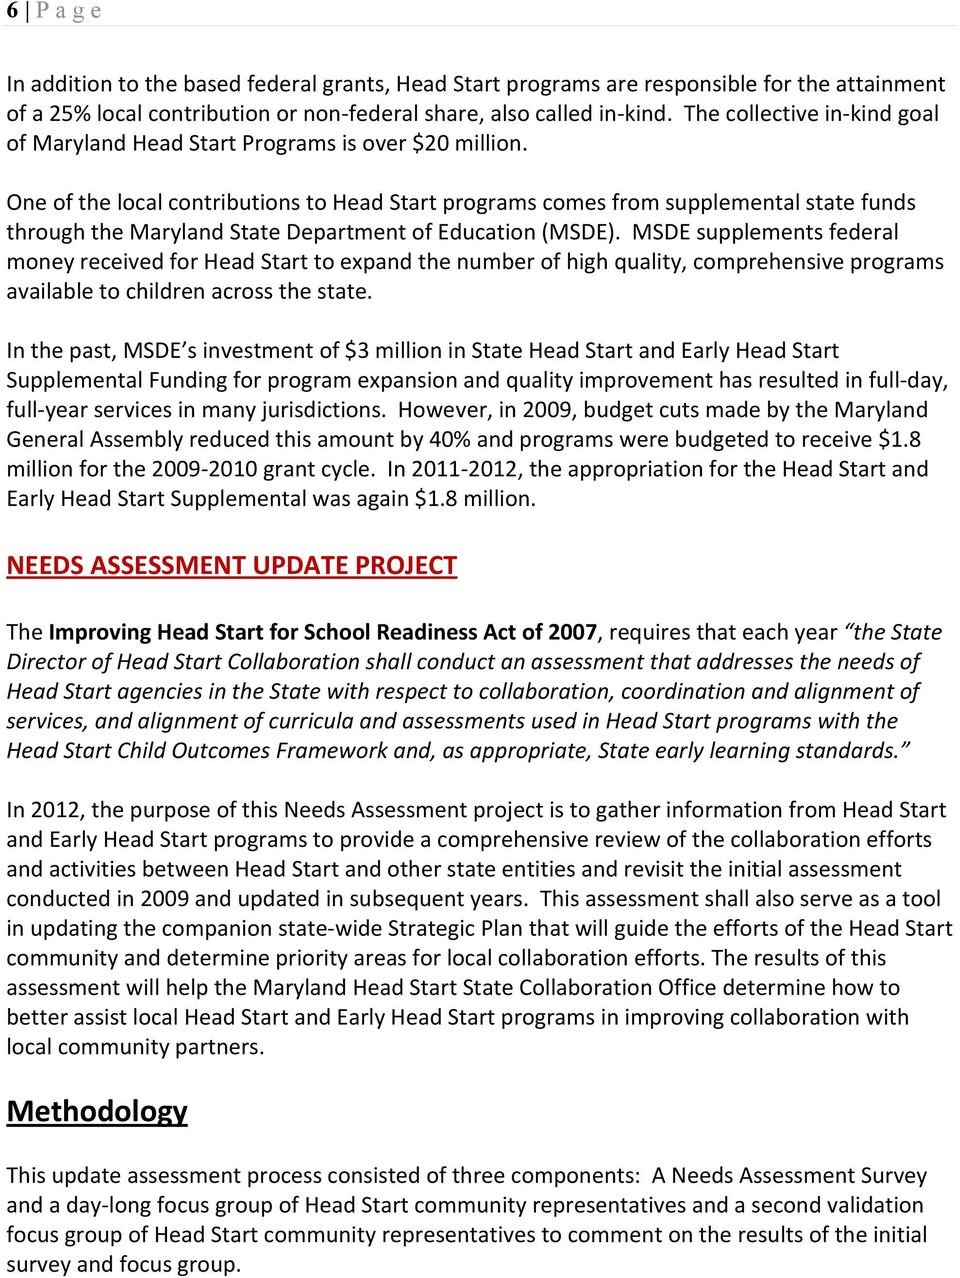 One of the local contributions to Head Start programs comes from supplemental state funds through the Maryland State Department of Education (MSDE).